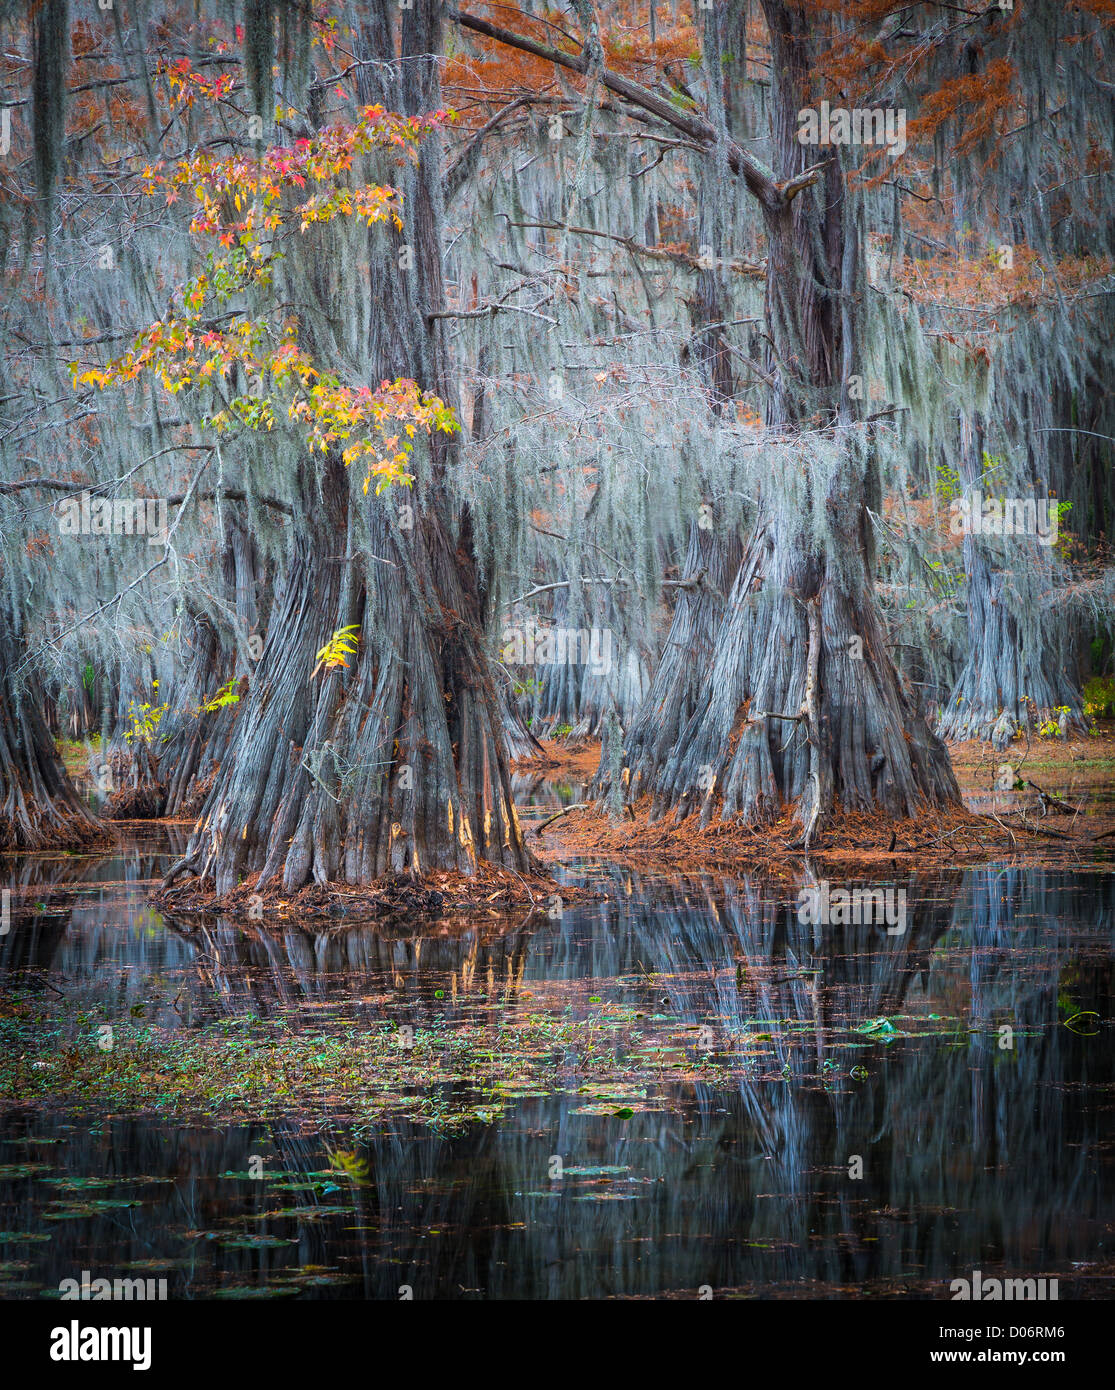 Cypress trees in fall color at Caddo Lake State Park, Texas - Stock Image